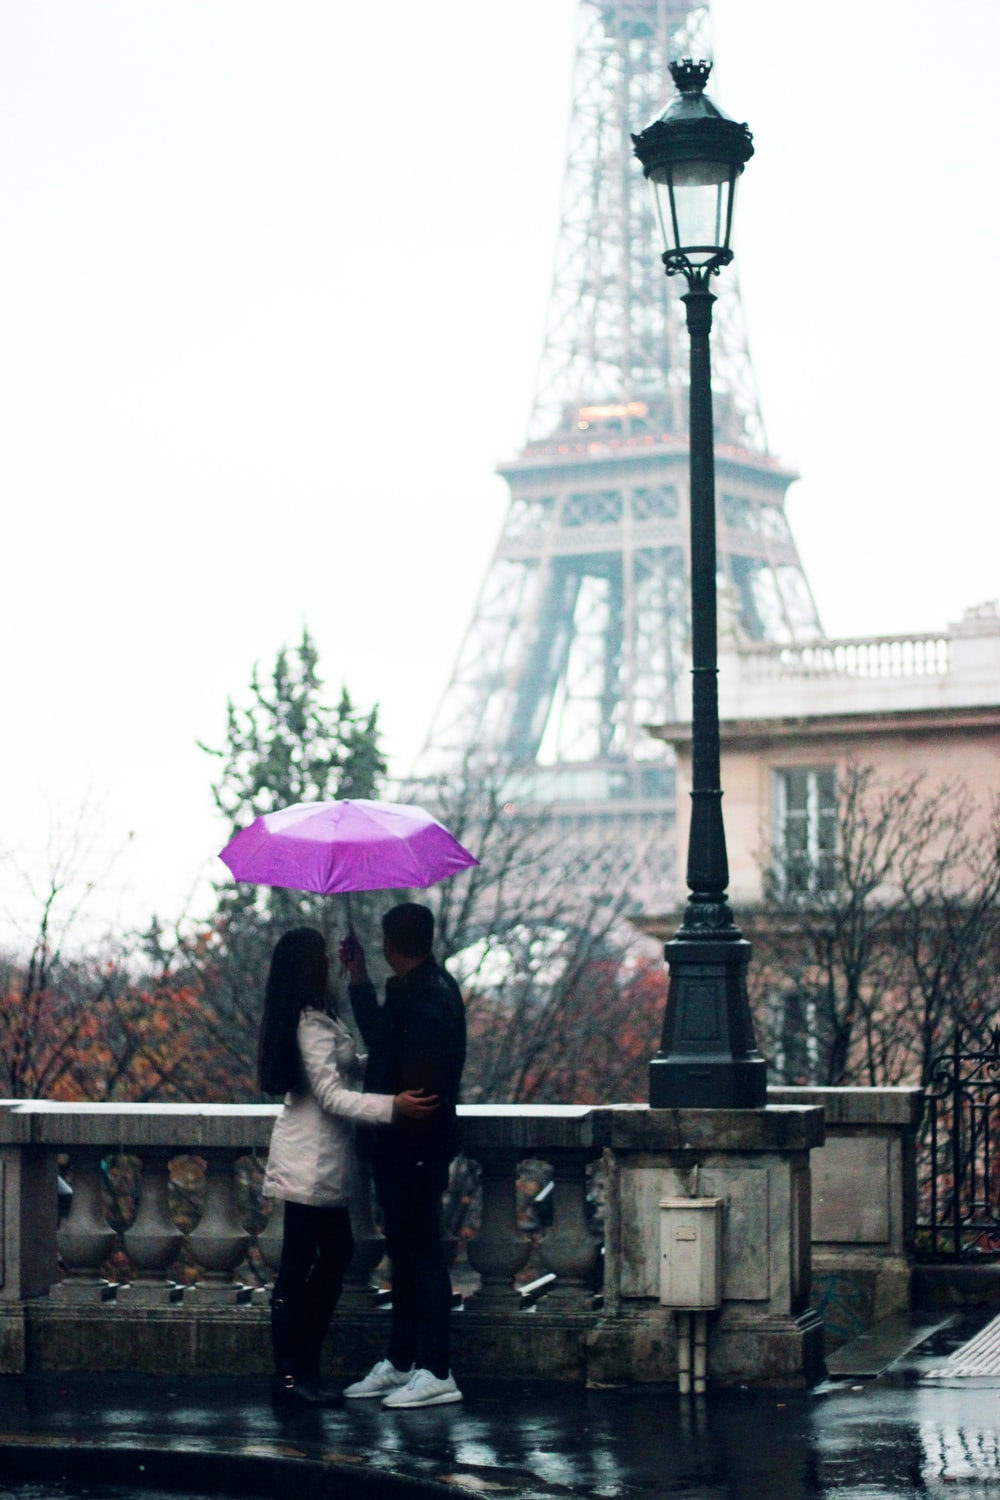 man and woman holding umbrella standing beside railing